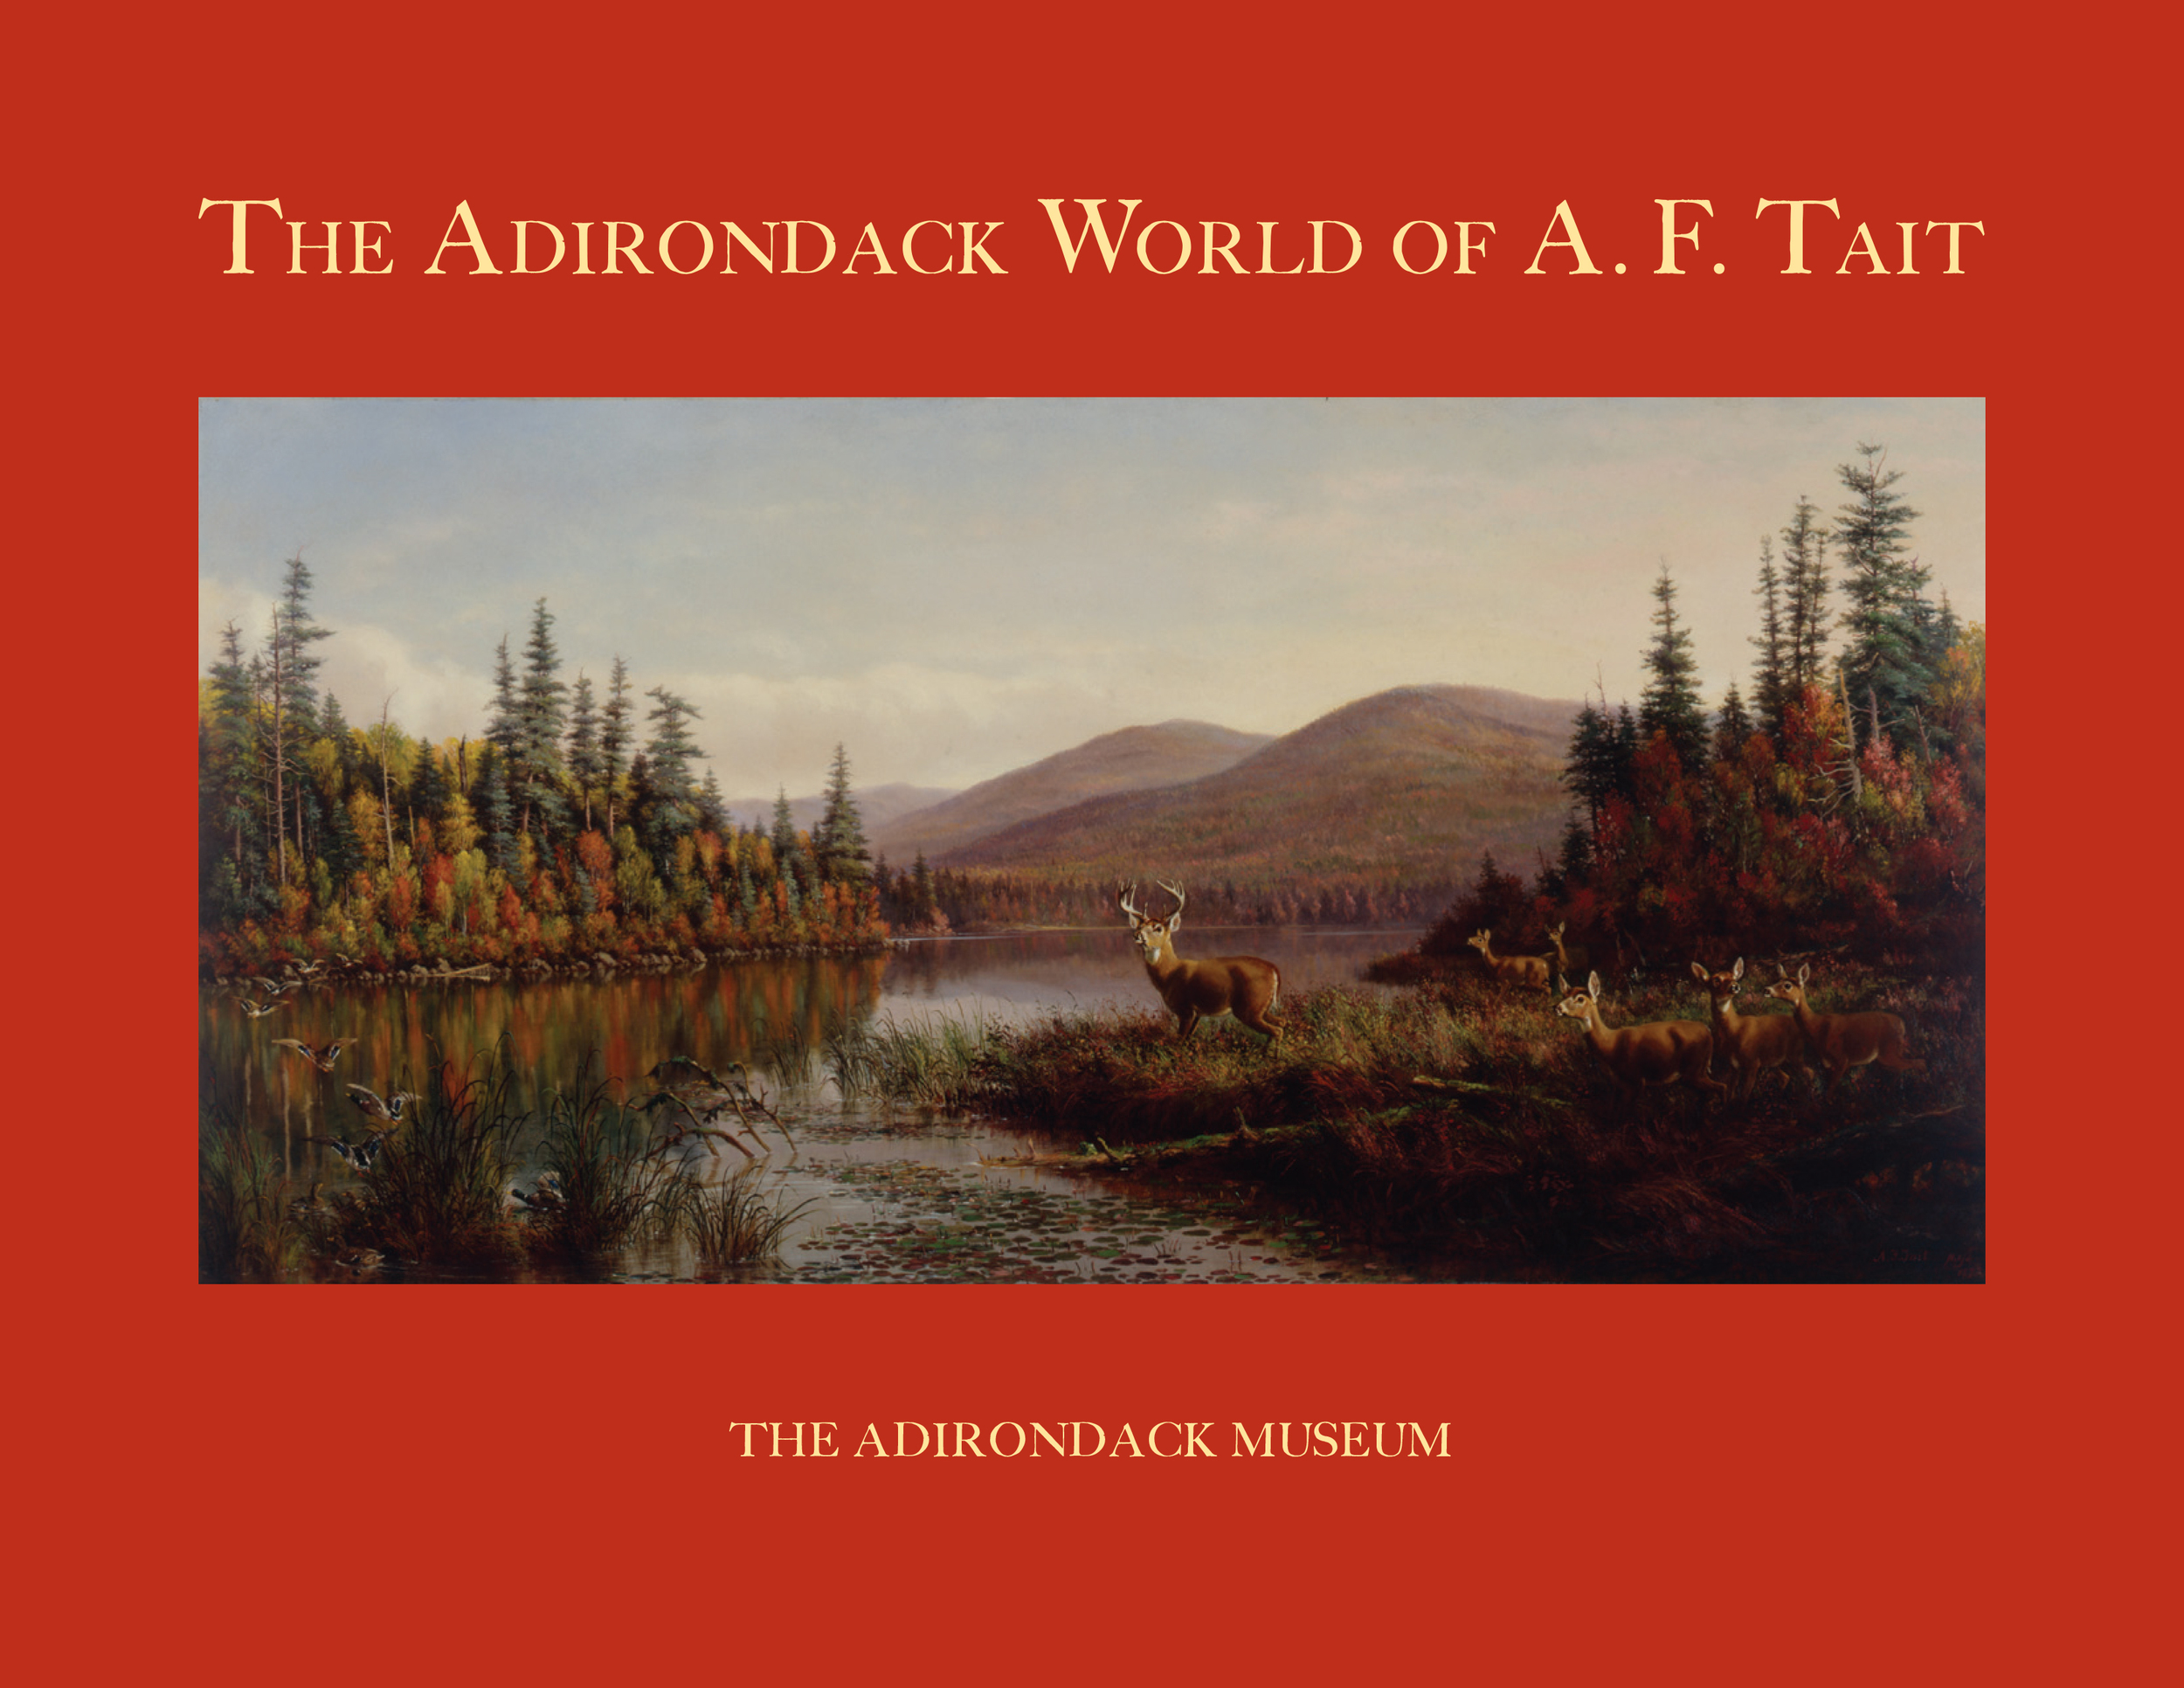 """""""The Adirondack World of A.F. Tait"""" exhibition catalog cover   The Adirondack Museum, Blue Mountain Lake, N.Y."""